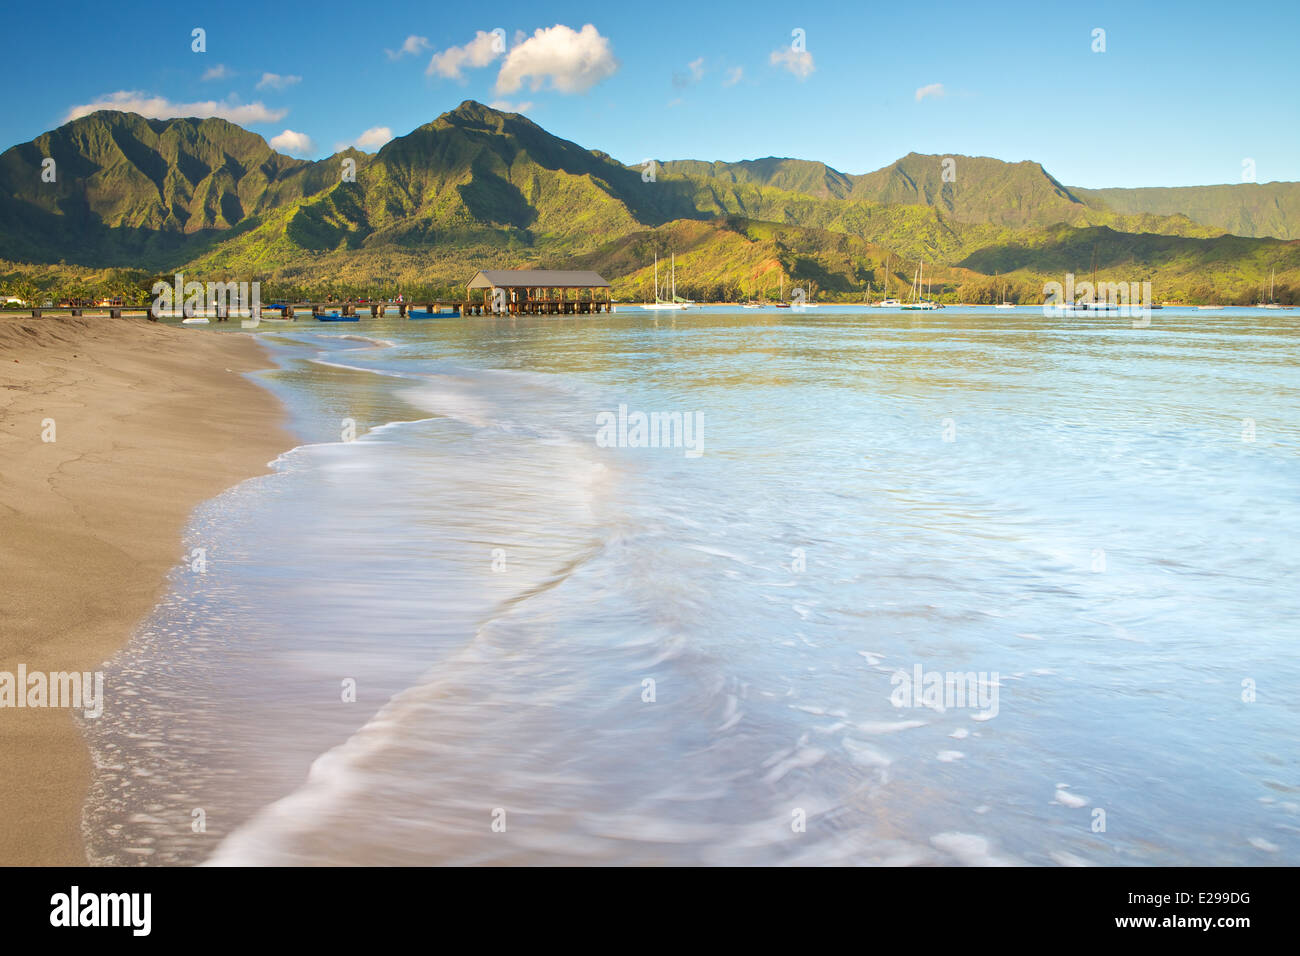 Sunrise on the beach at Hanalei Bay in Kauai, the Garden Isle of Kauai - Stock Image